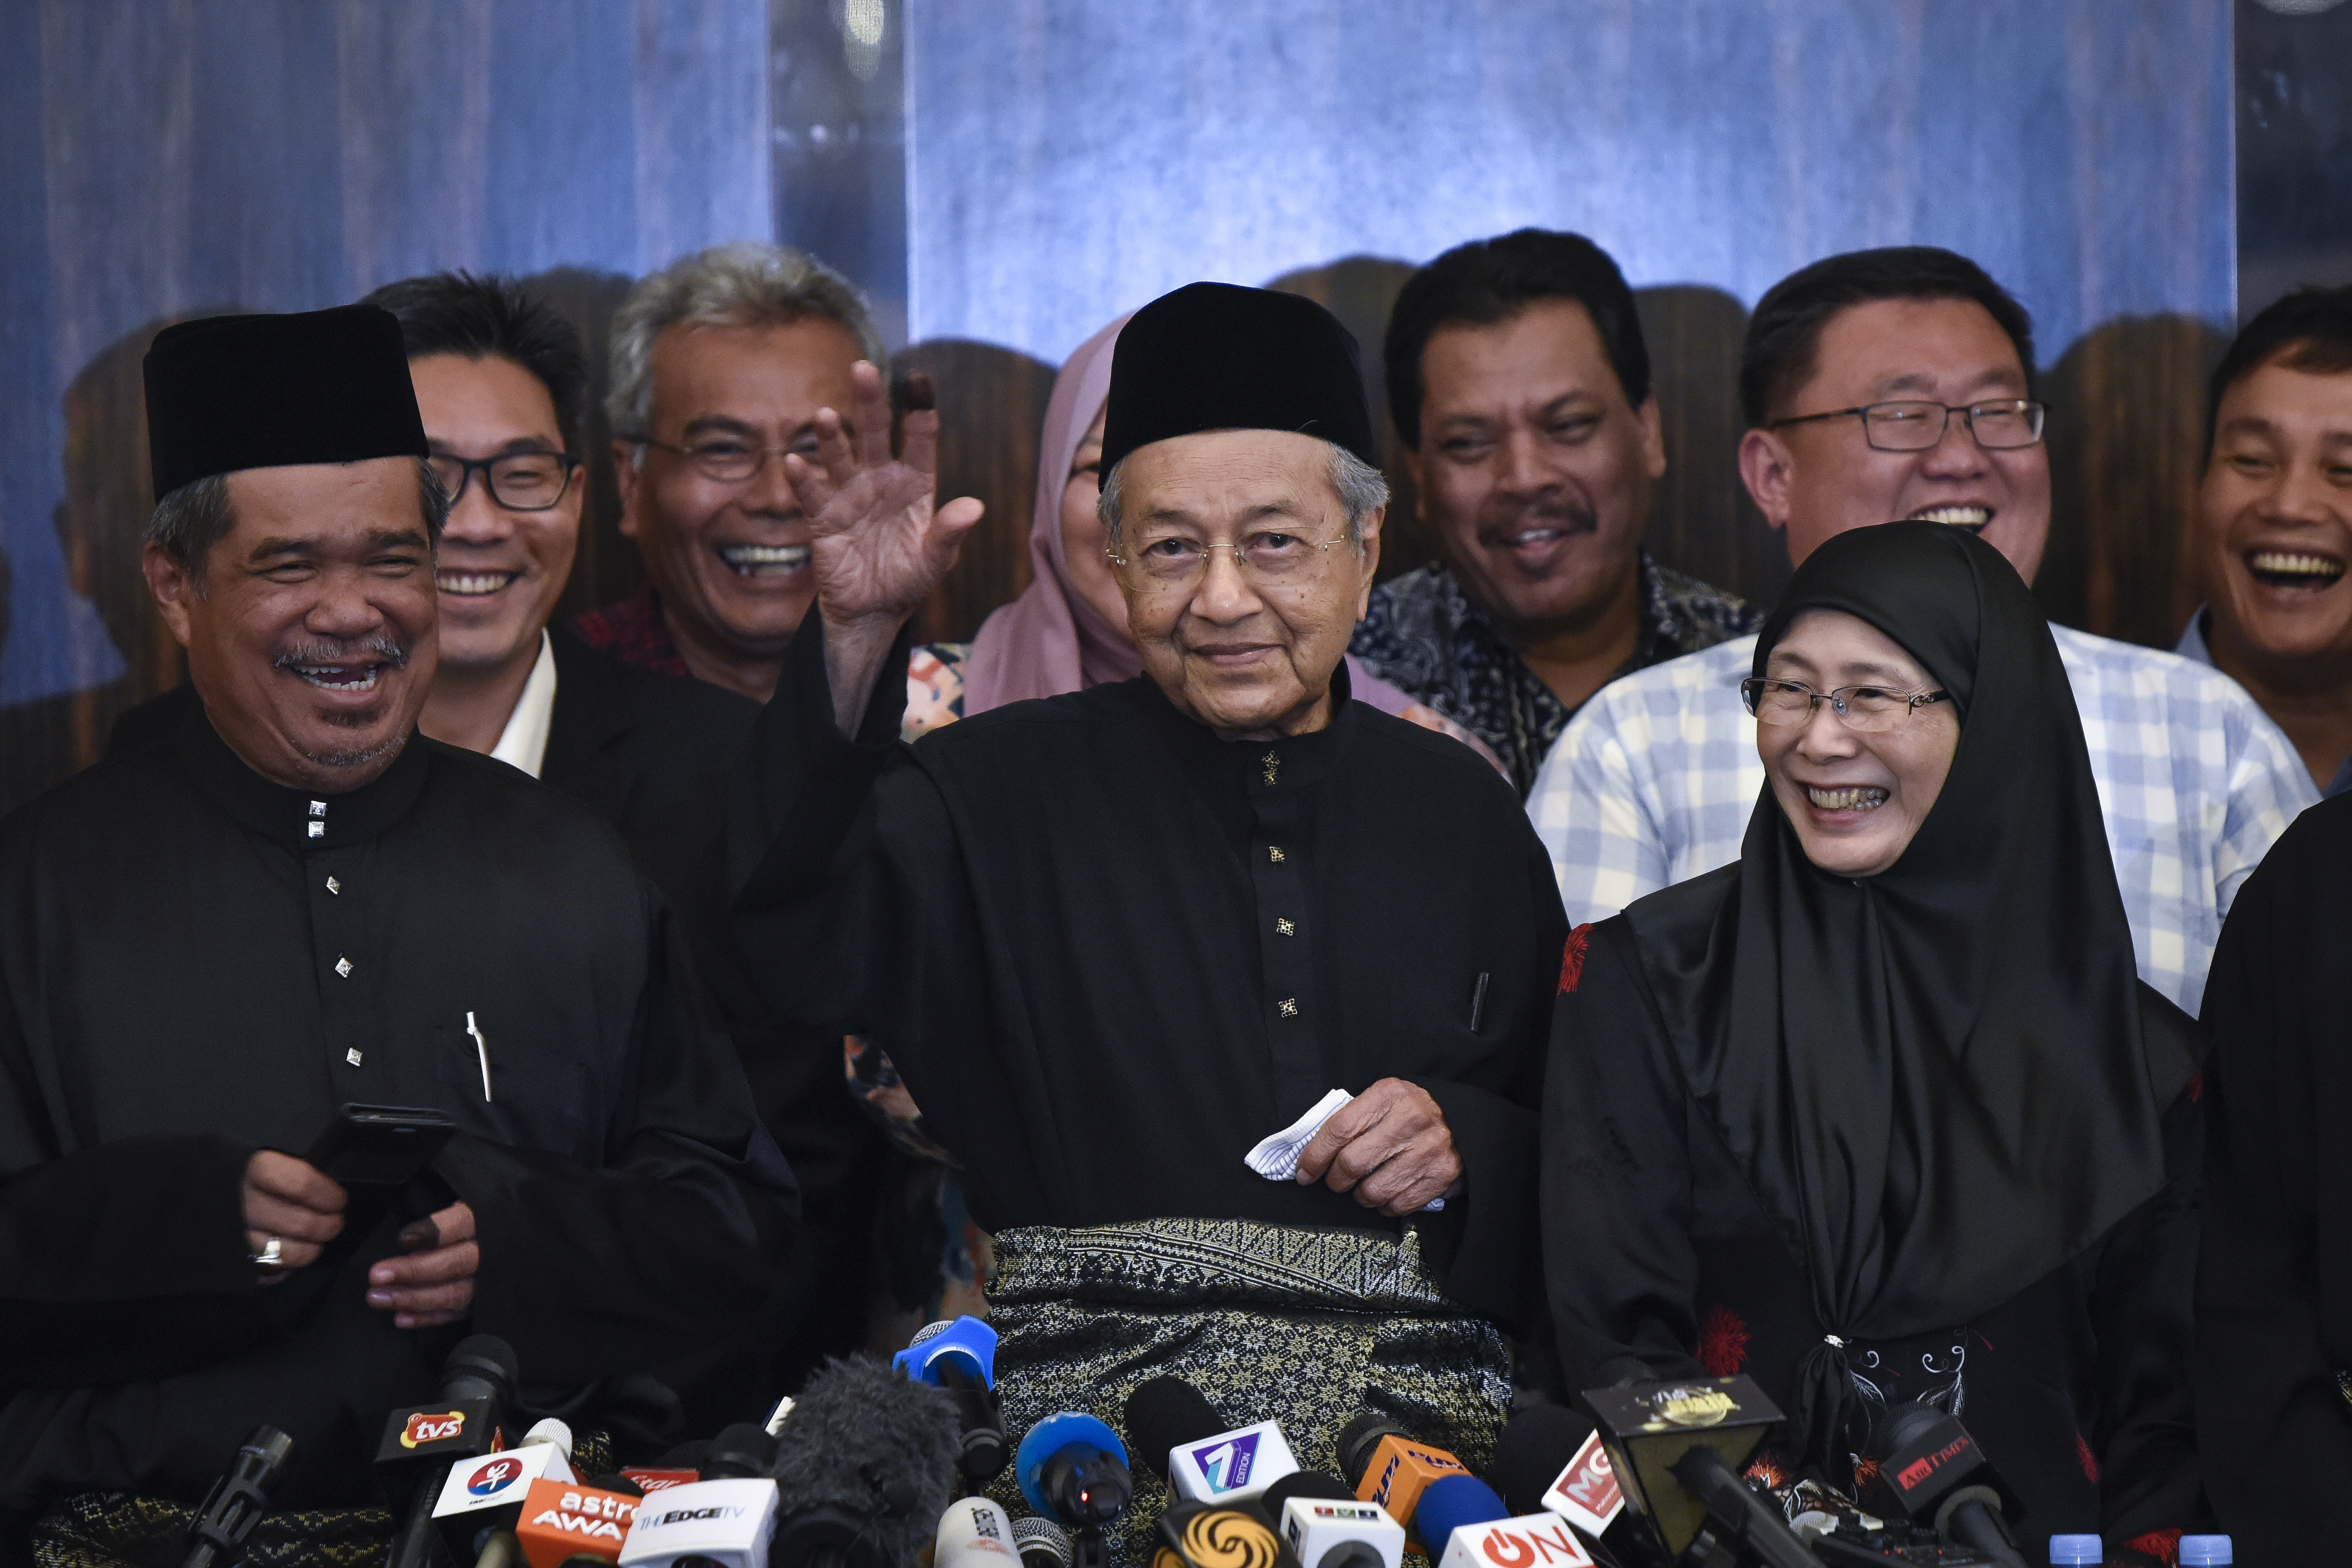 The 7th Malaysian Prime Minister and opposition candidate Mahathir Mohamad during a press conference on May 10, 2018 in Kuala Lumpur, Malaysia.